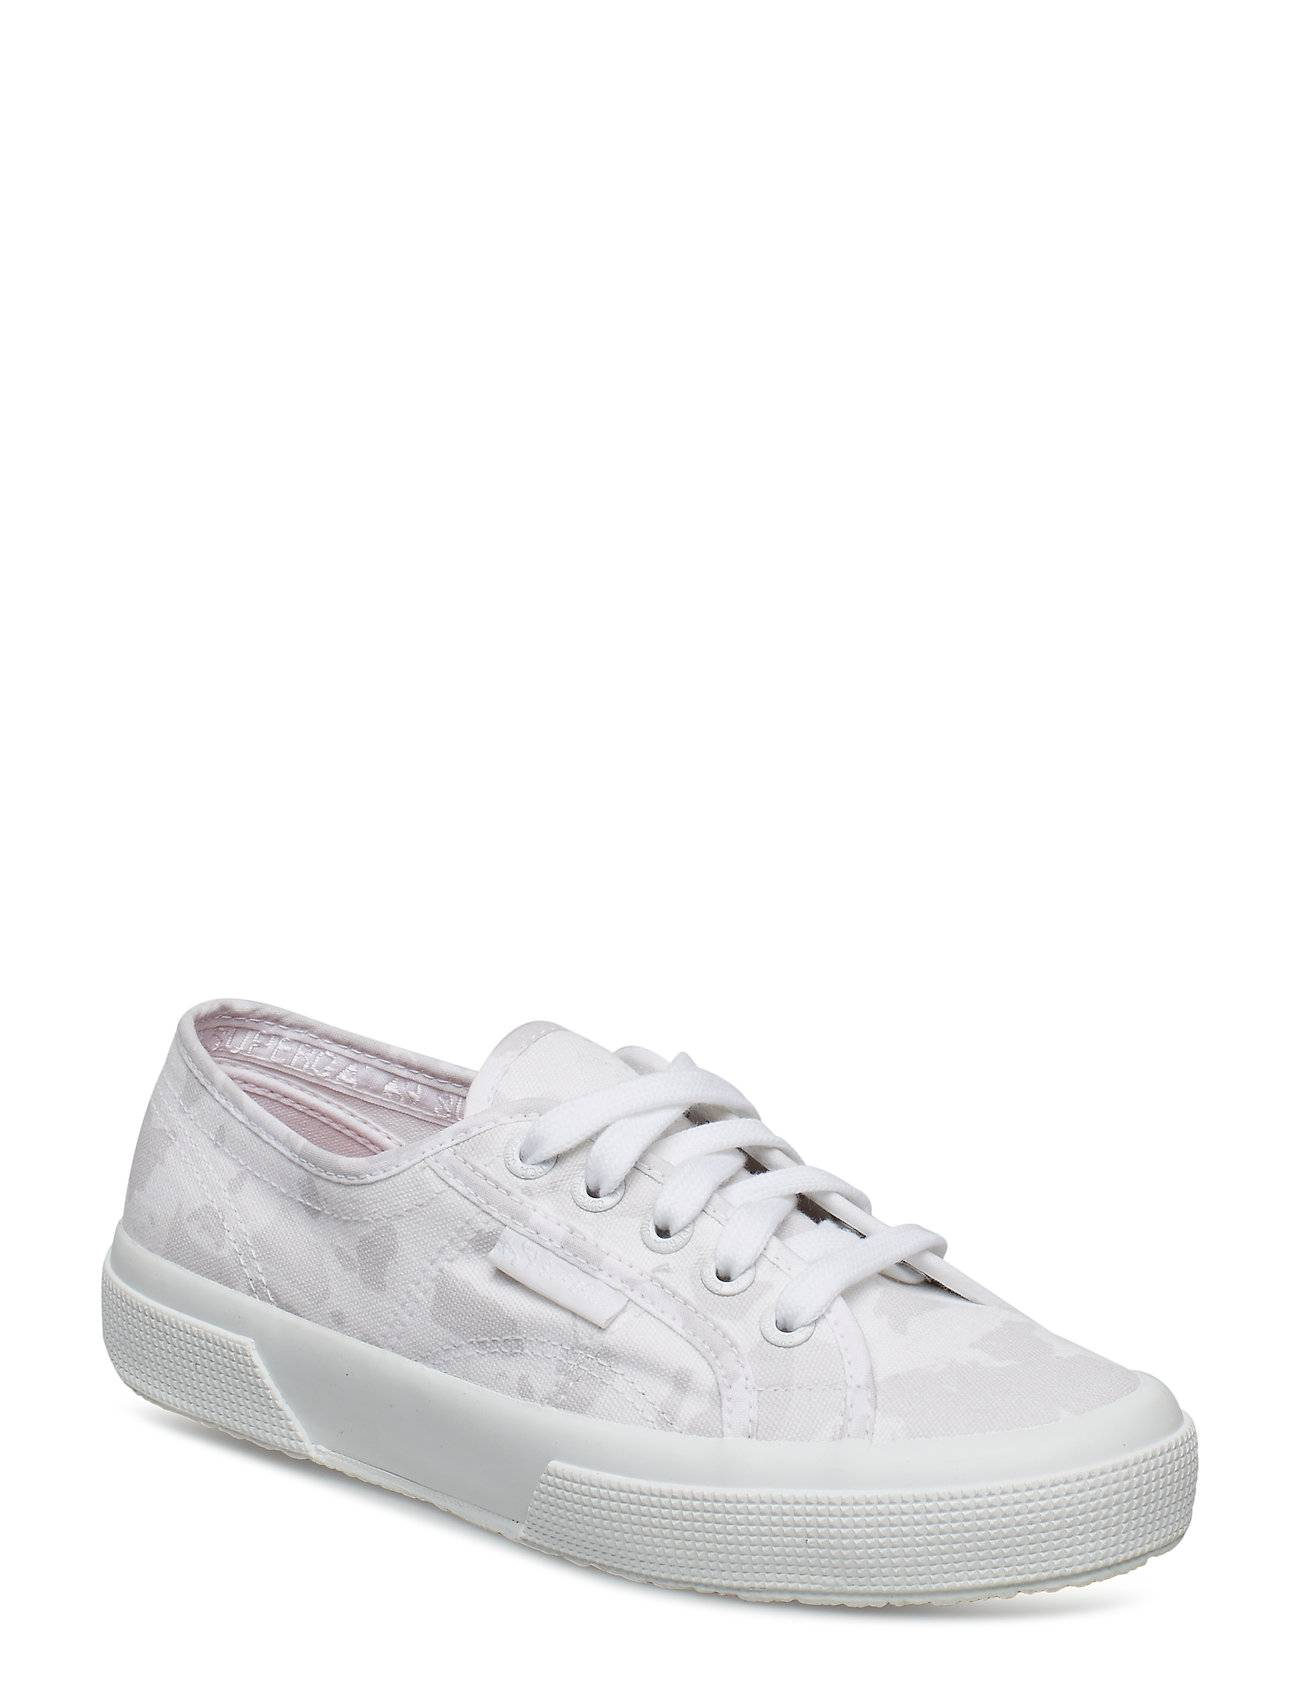 Superga 2750 Fancotu Matalavartiset Sneakerit Tennarit Valkoinen